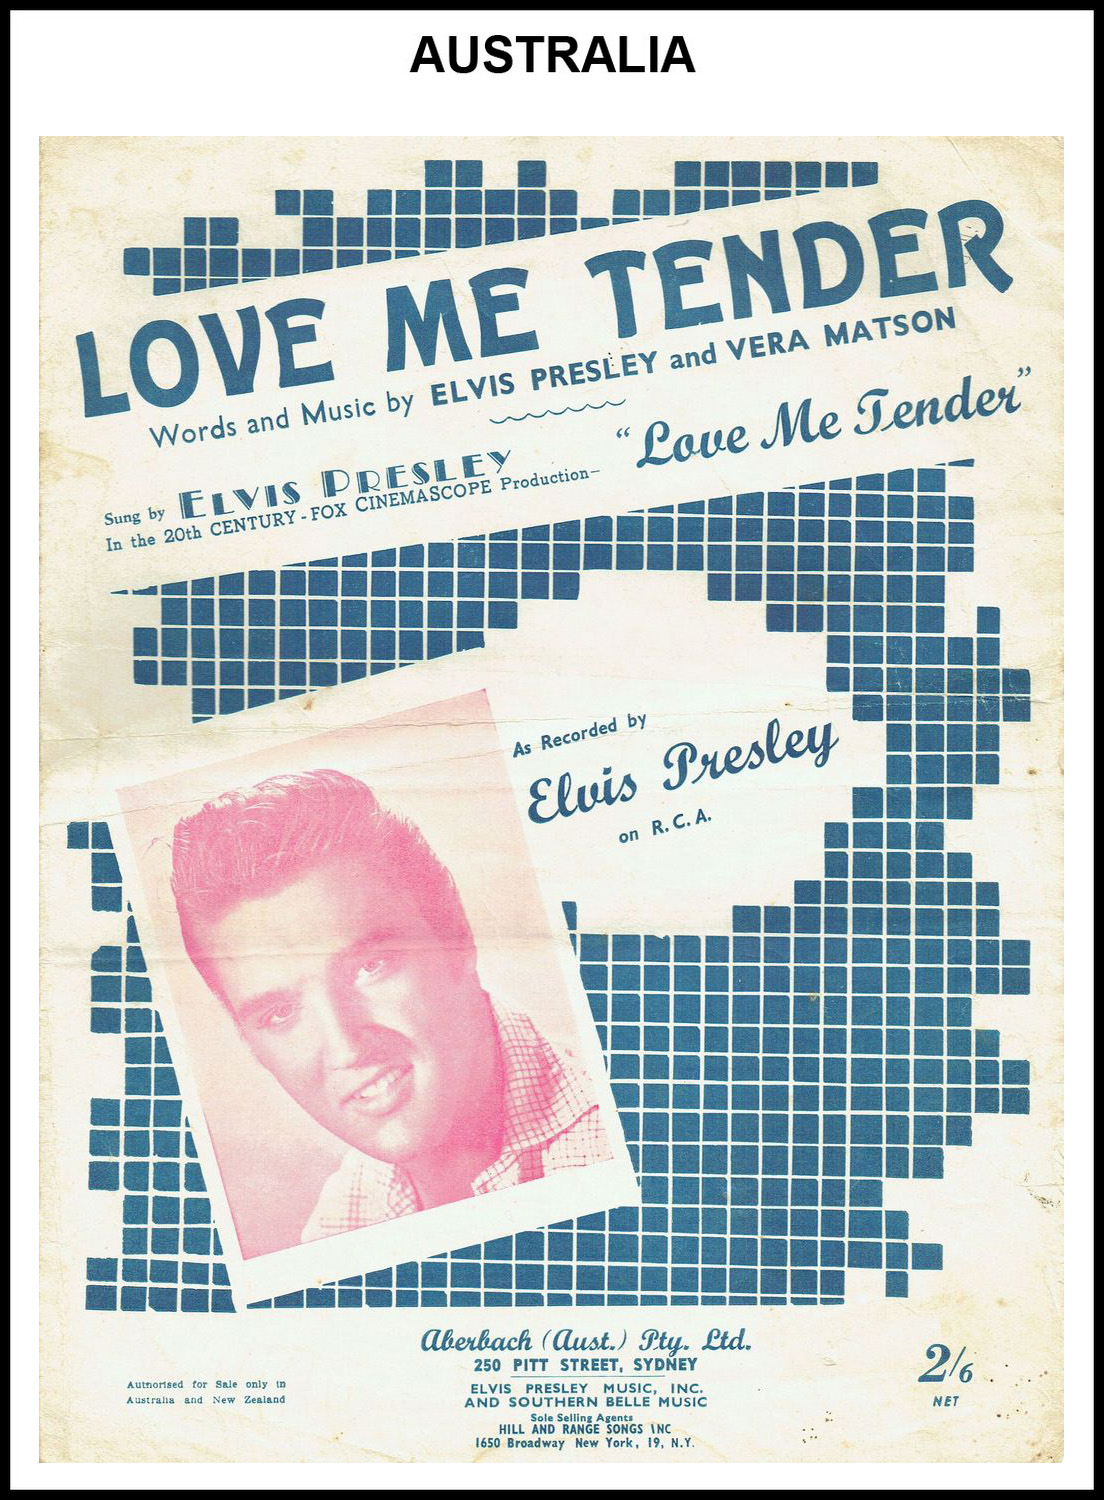 1956 - Love Me Tender (Australia) 2 (CHRIS GILES COLLECTION)